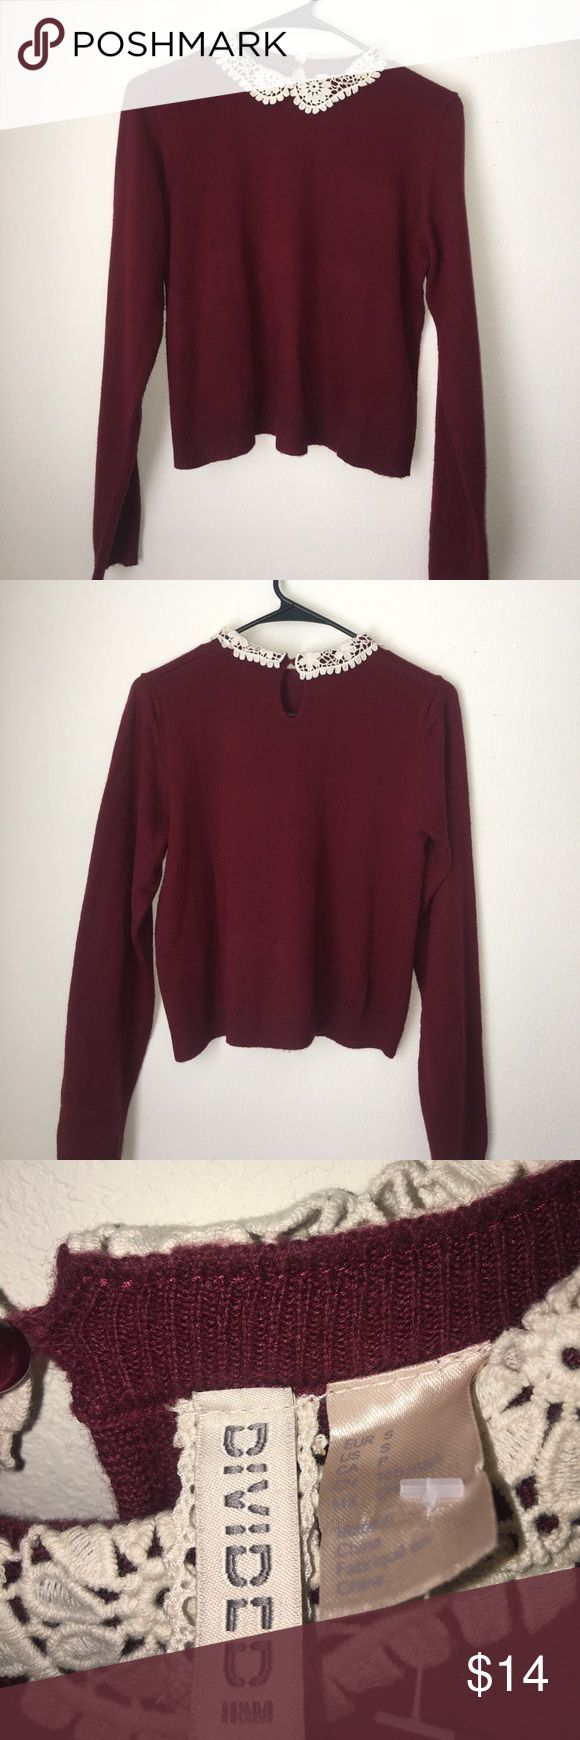 Maroon Sweater with Lace Collar Maroon sweater with cream Lace collar. Open  to offers! H&M Sweaters Crew & Scoop Necks